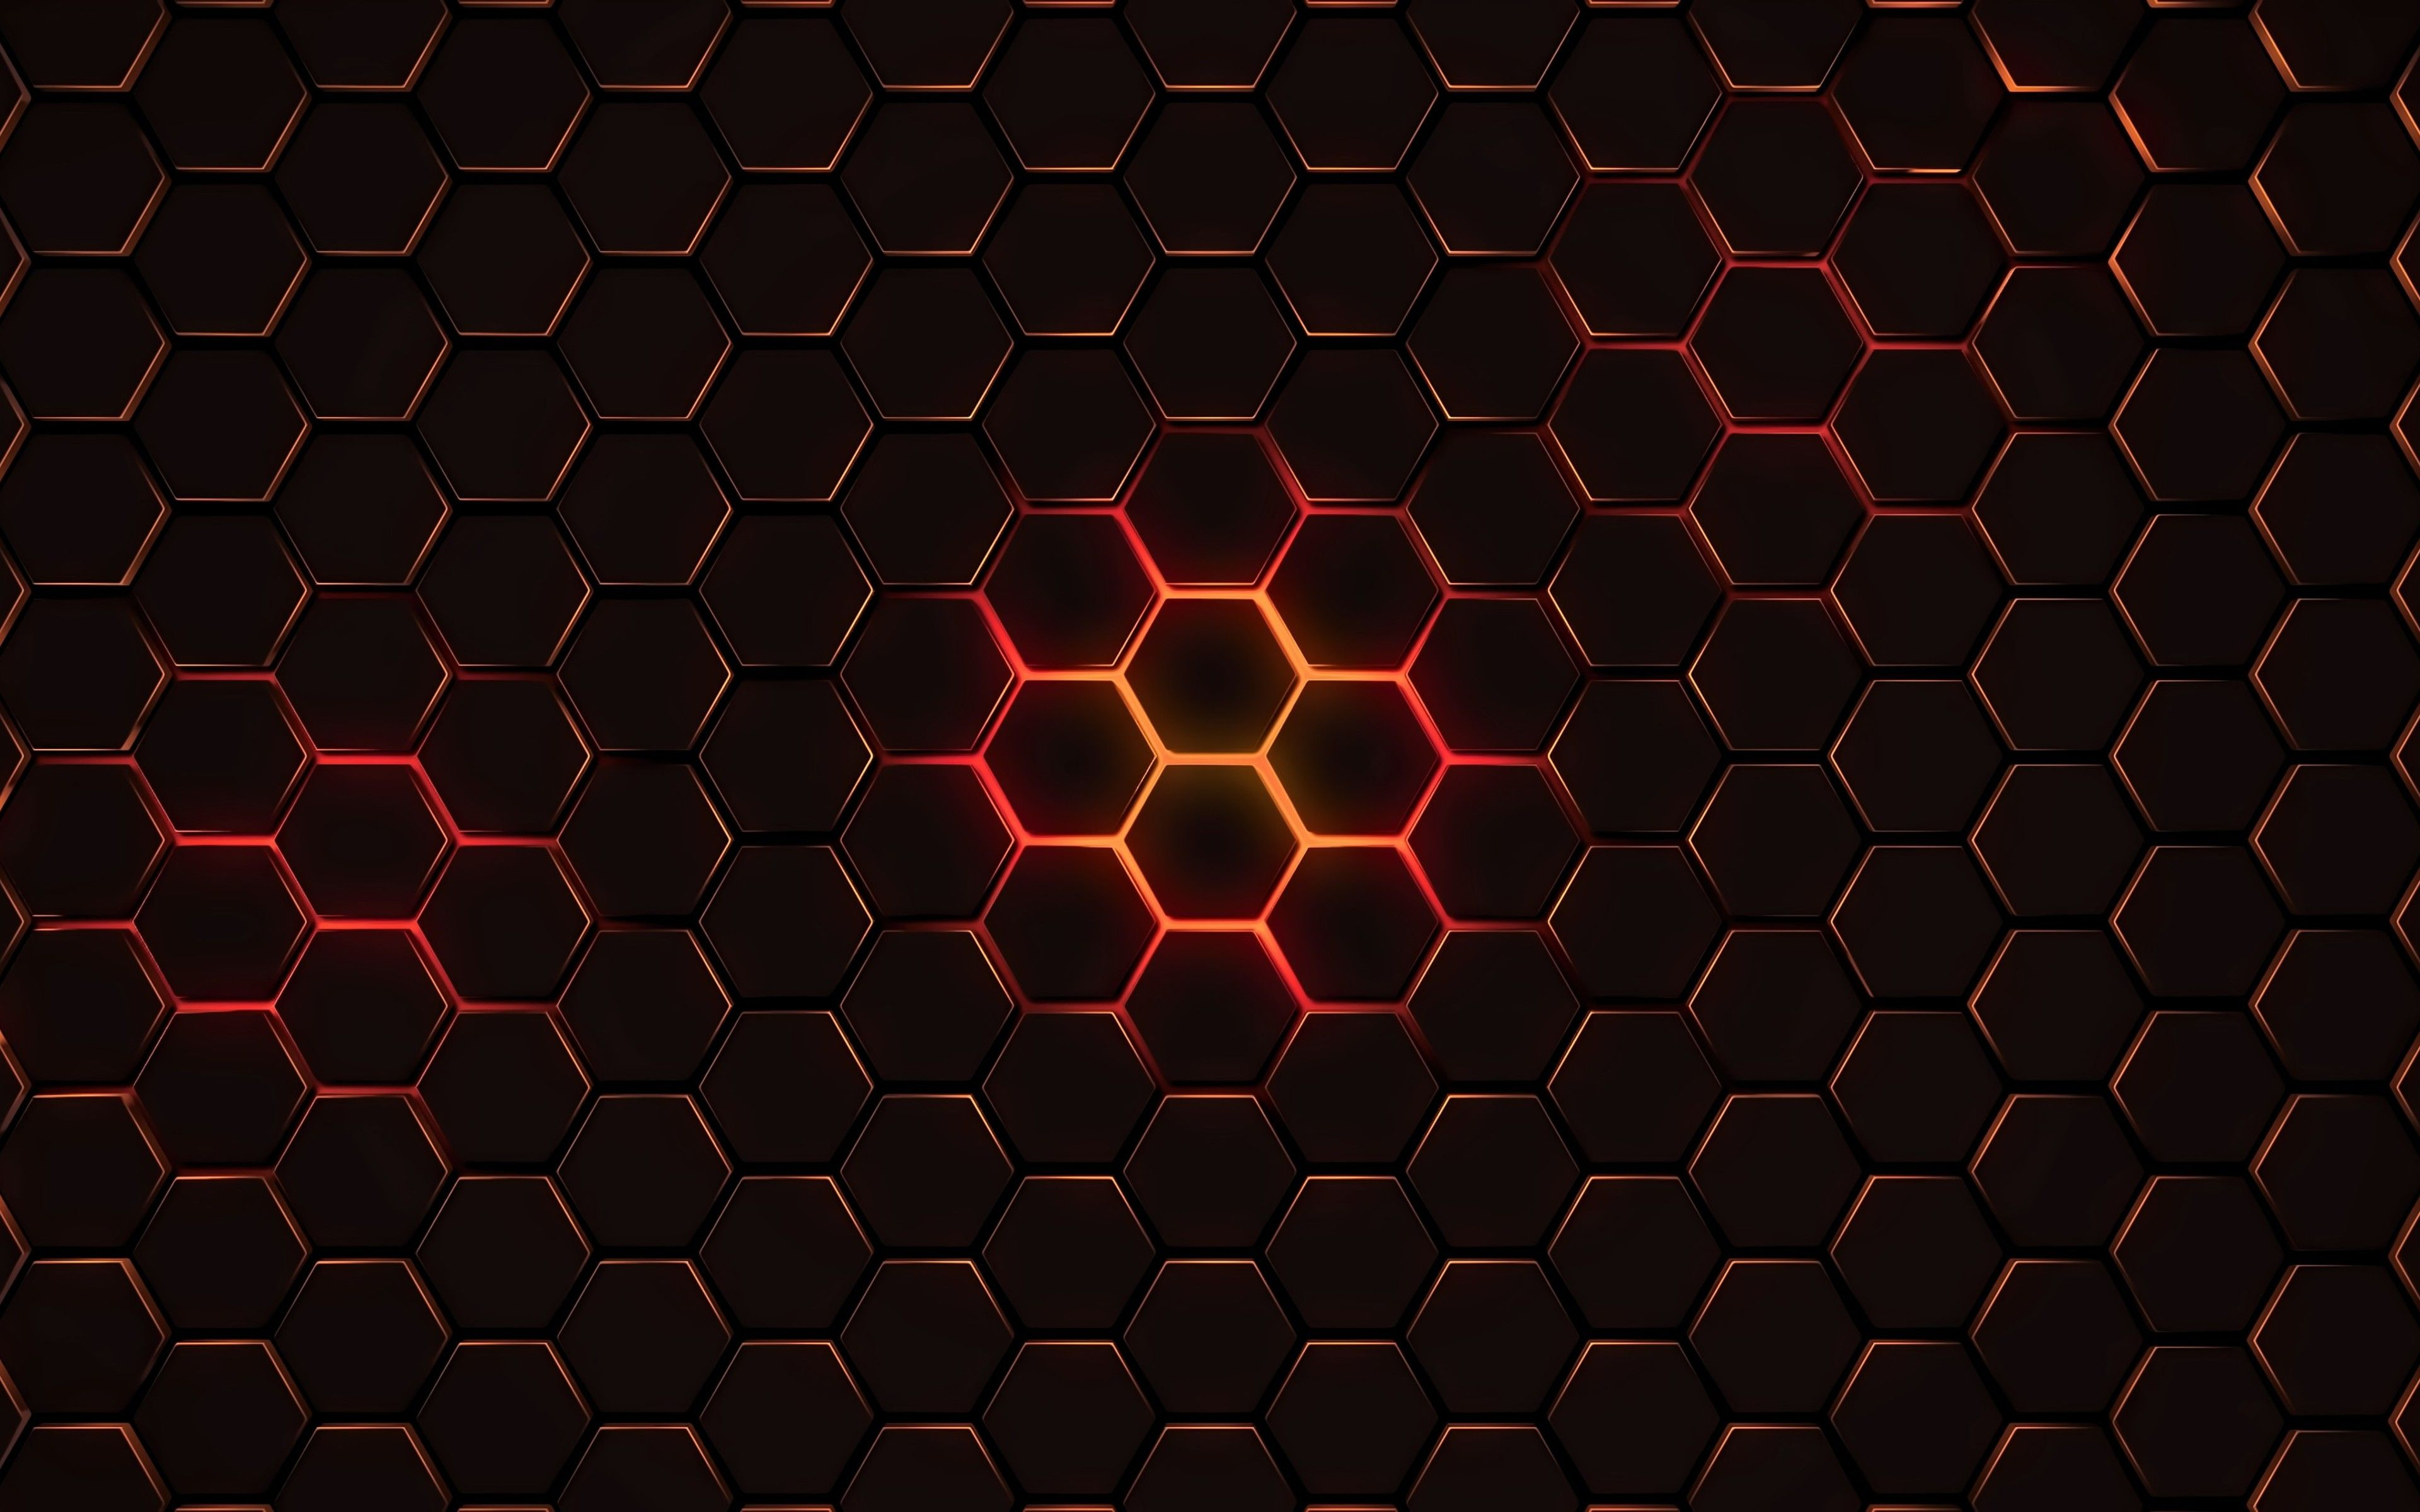 Hexagon pattern background wallpaper for desktop in high ...